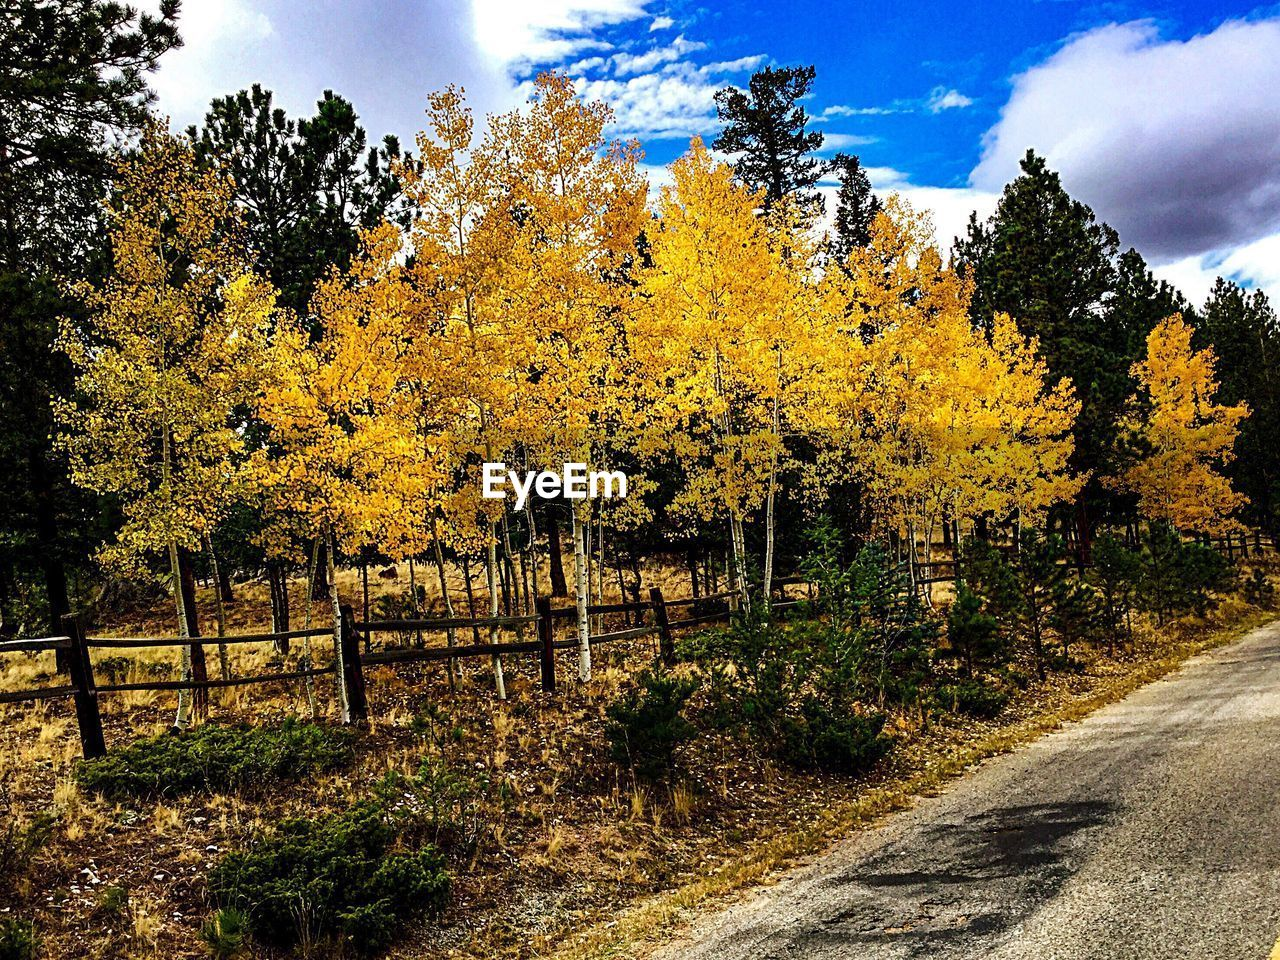 tree, plant, beauty in nature, autumn, nature, change, no people, tranquility, sky, growth, cloud - sky, tranquil scene, barrier, yellow, scenics - nature, day, boundary, road, land, the way forward, outdoors, fall